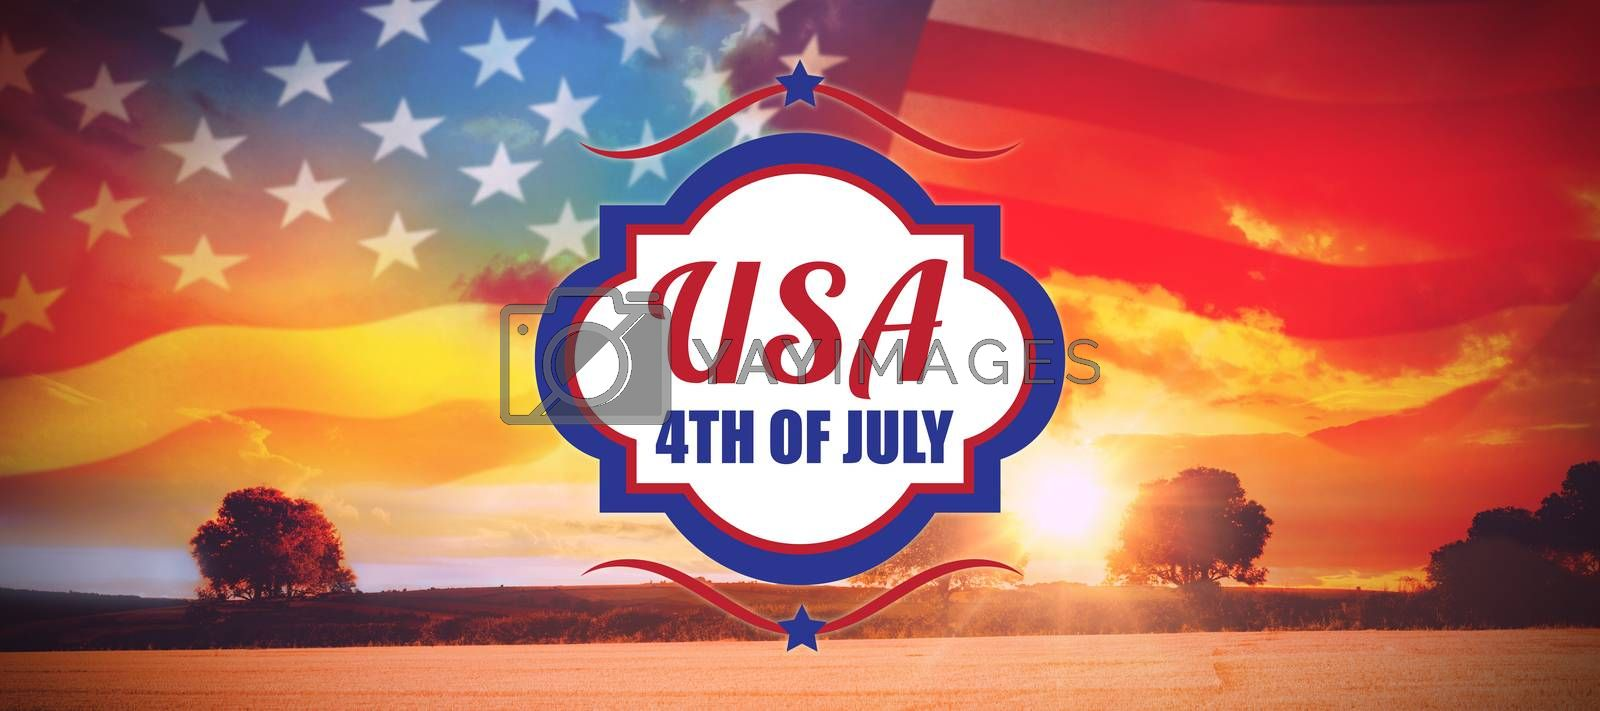 Digitally generated image of 4th of july text  against countryside scene